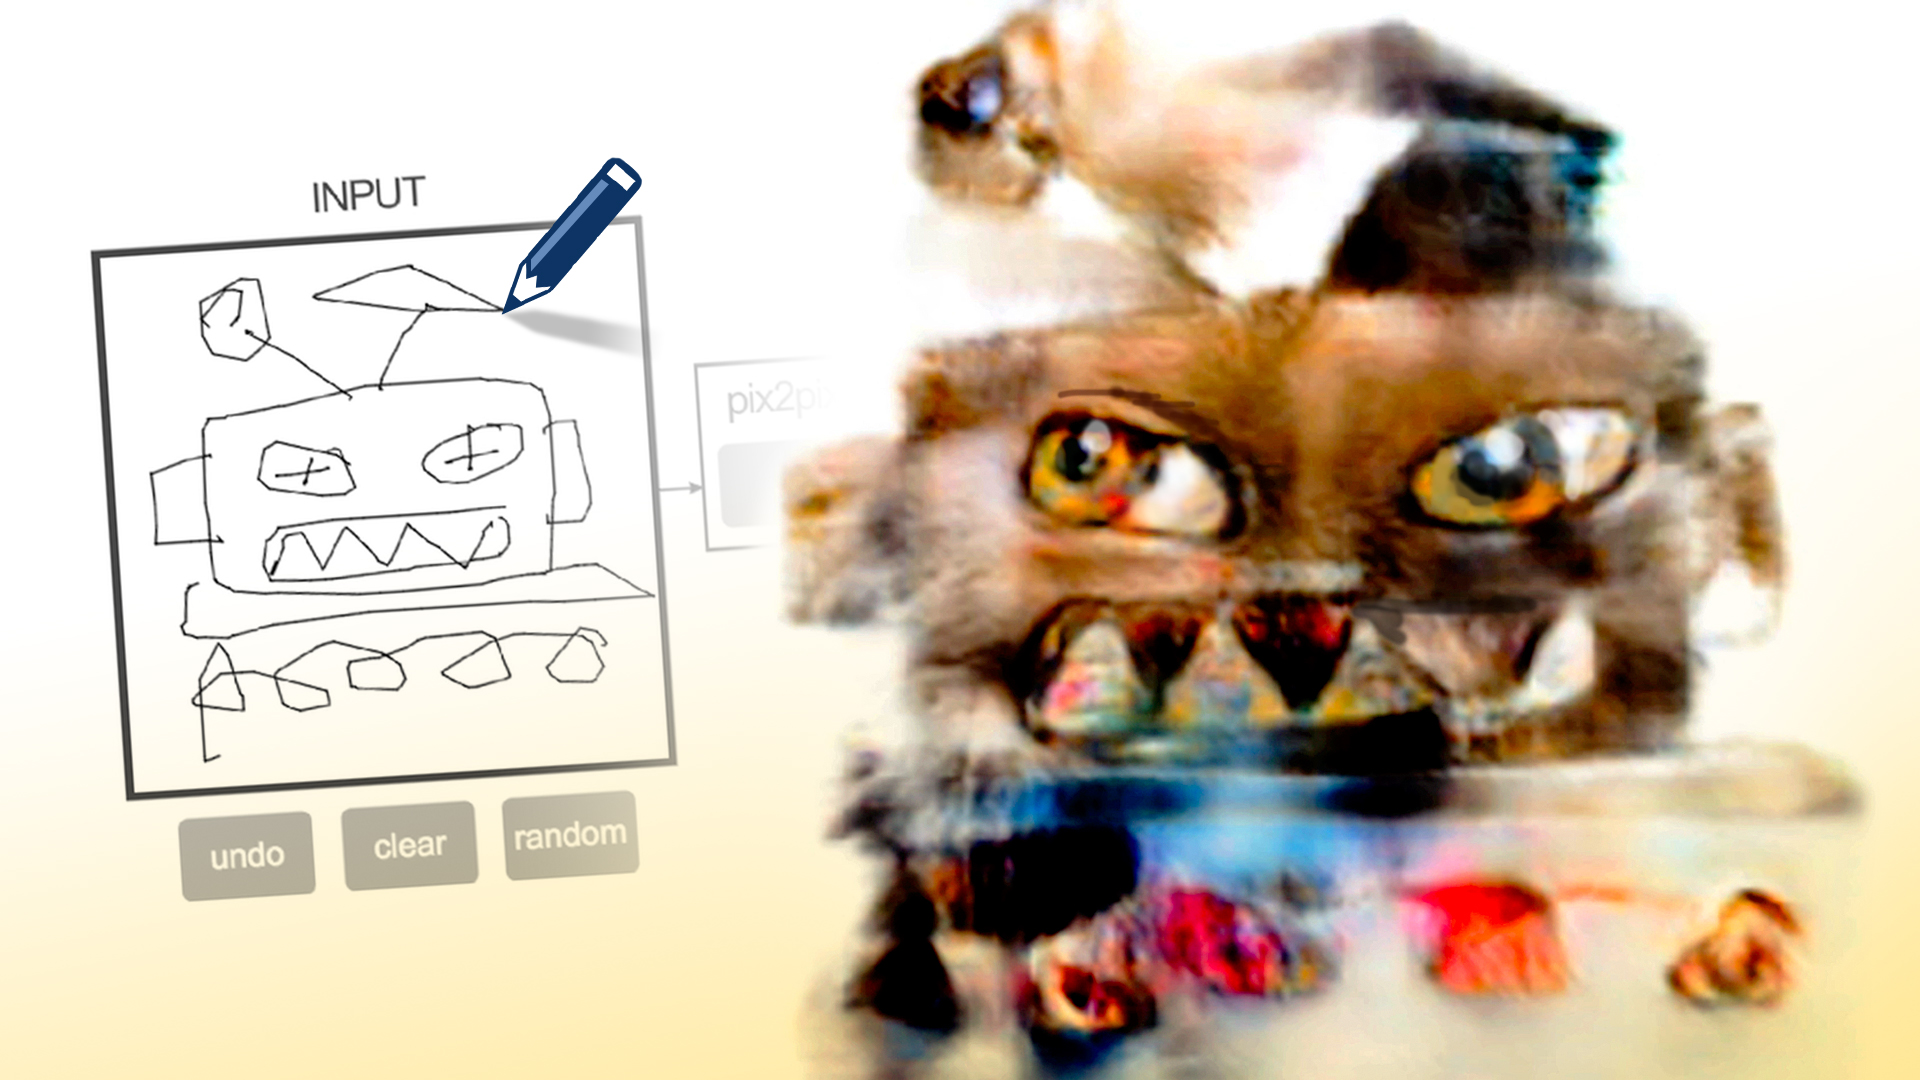 How to draw ROBOT CATS with edges2cats (pix2pix)